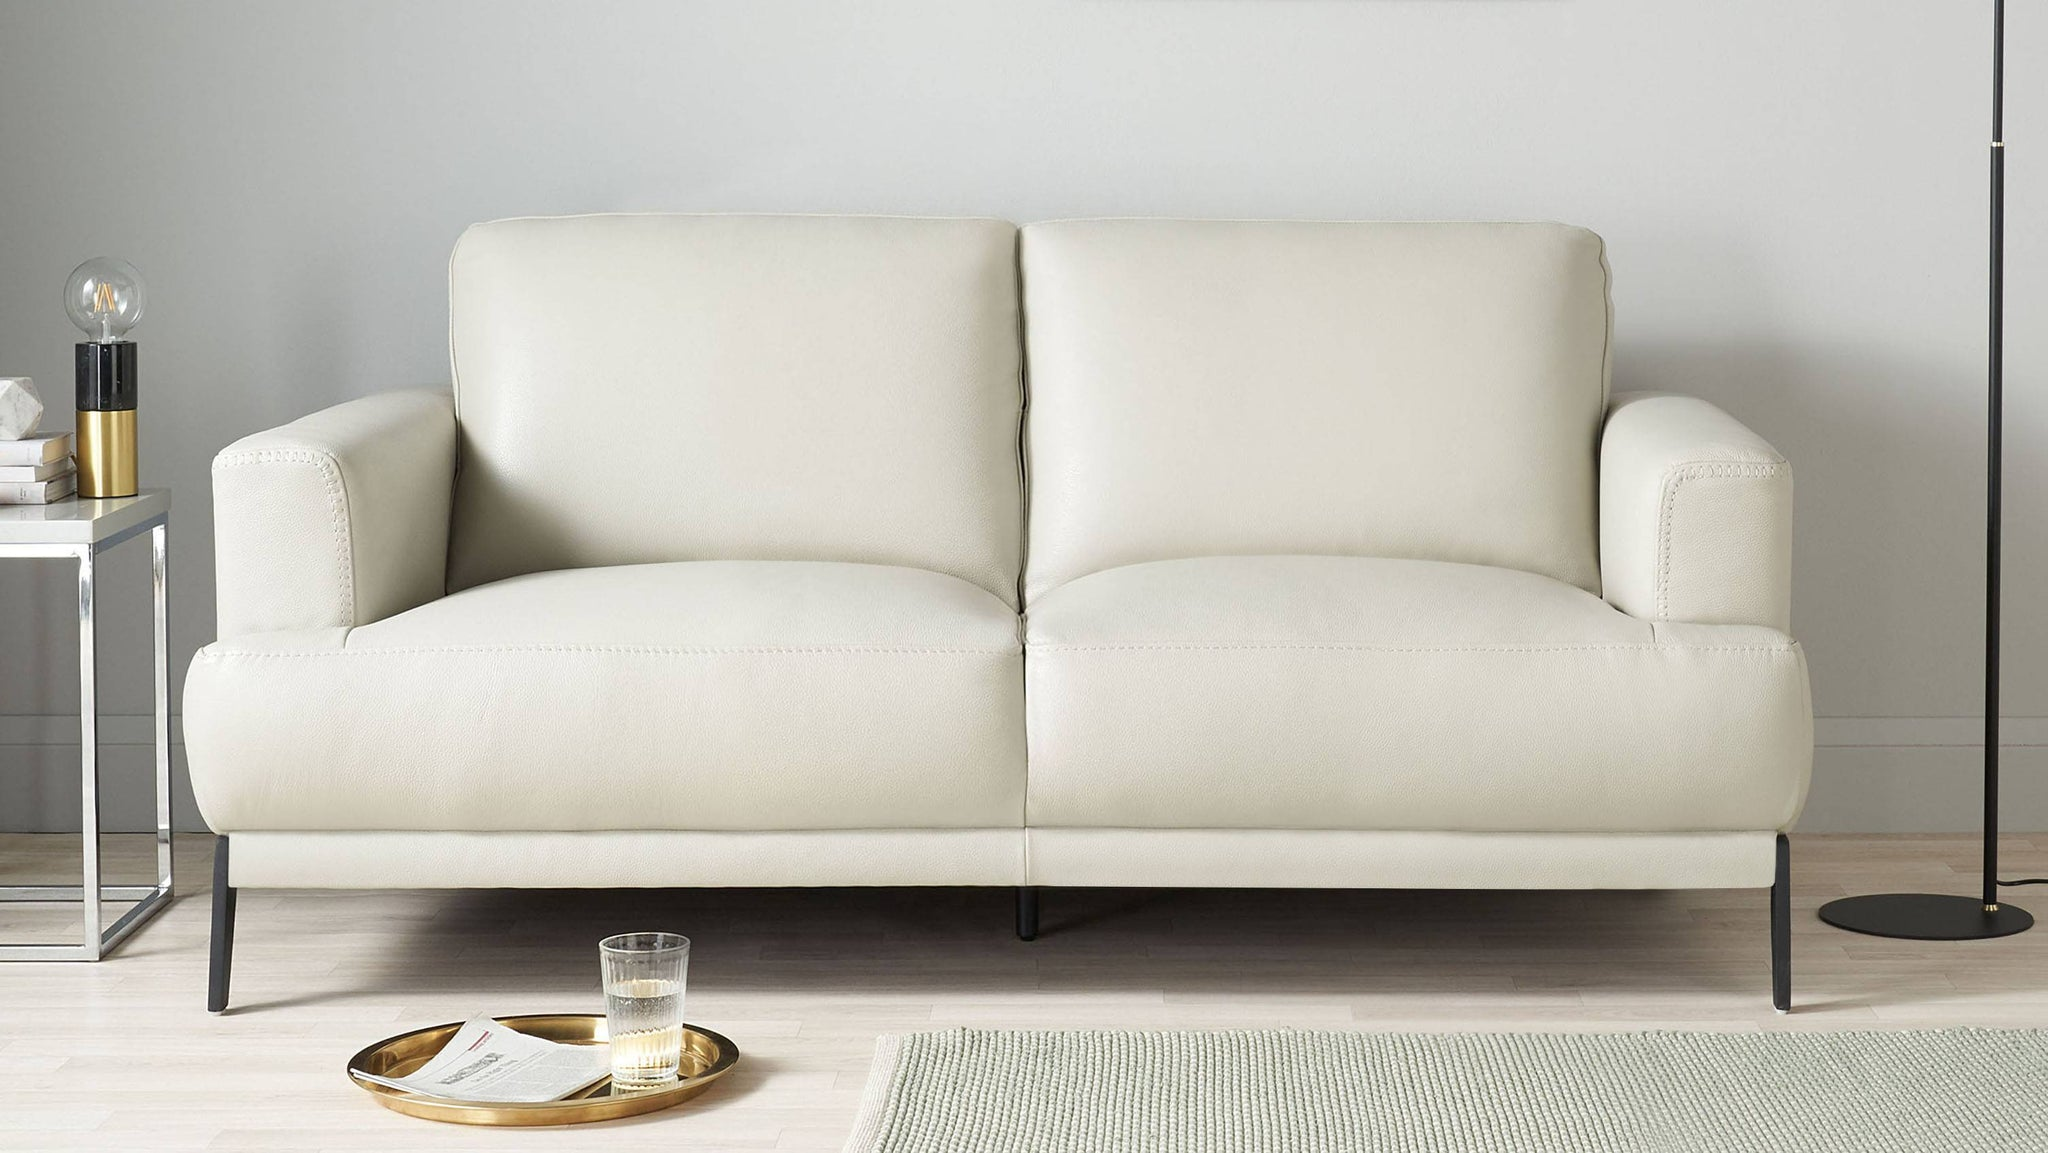 2 seater modern leather sofas